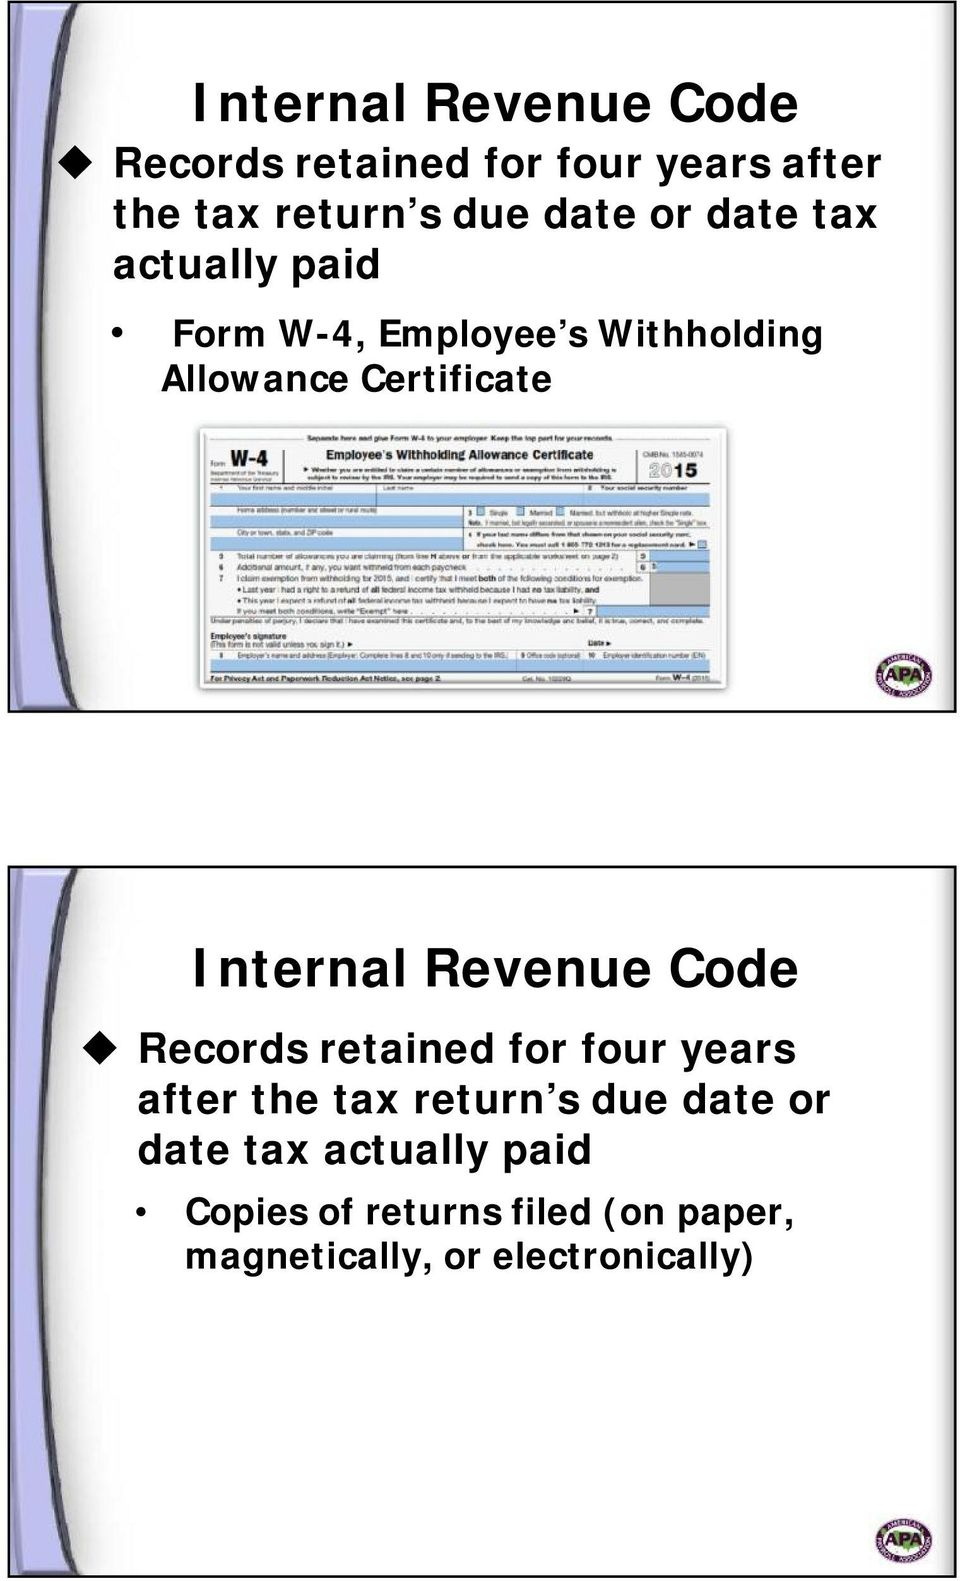 date tax actually paid Copies of returns filed (on paper, magnetically, or